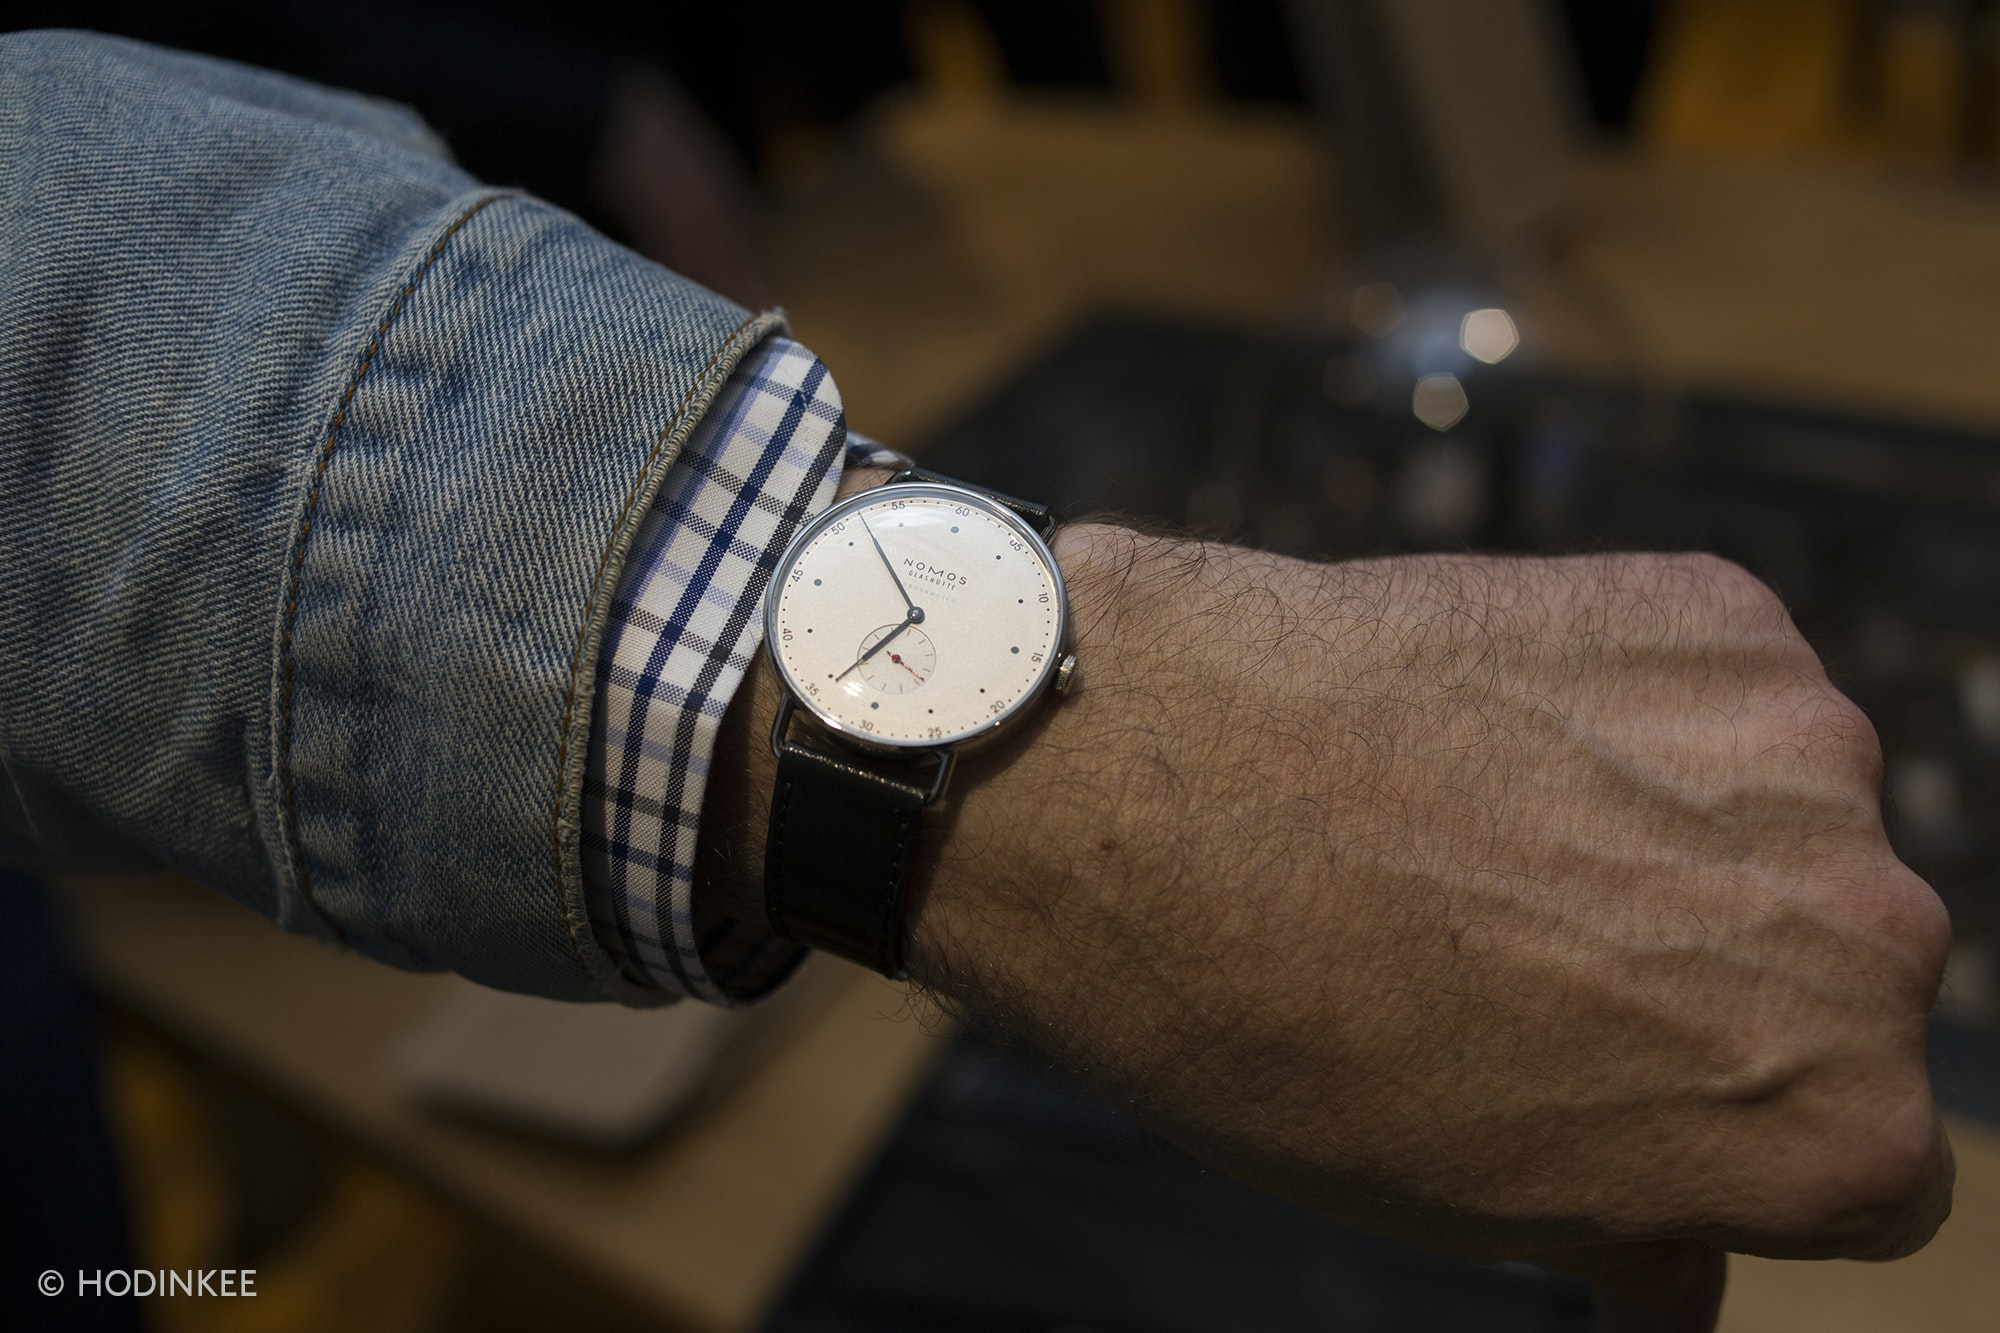 Photo Report: The NOMOS Glashütte Metro Chronometer For HODINKEE Launch Party Photo Report: The NOMOS Glashütte Metro Chronometer For HODINKEE Launch Party 20014889 copy